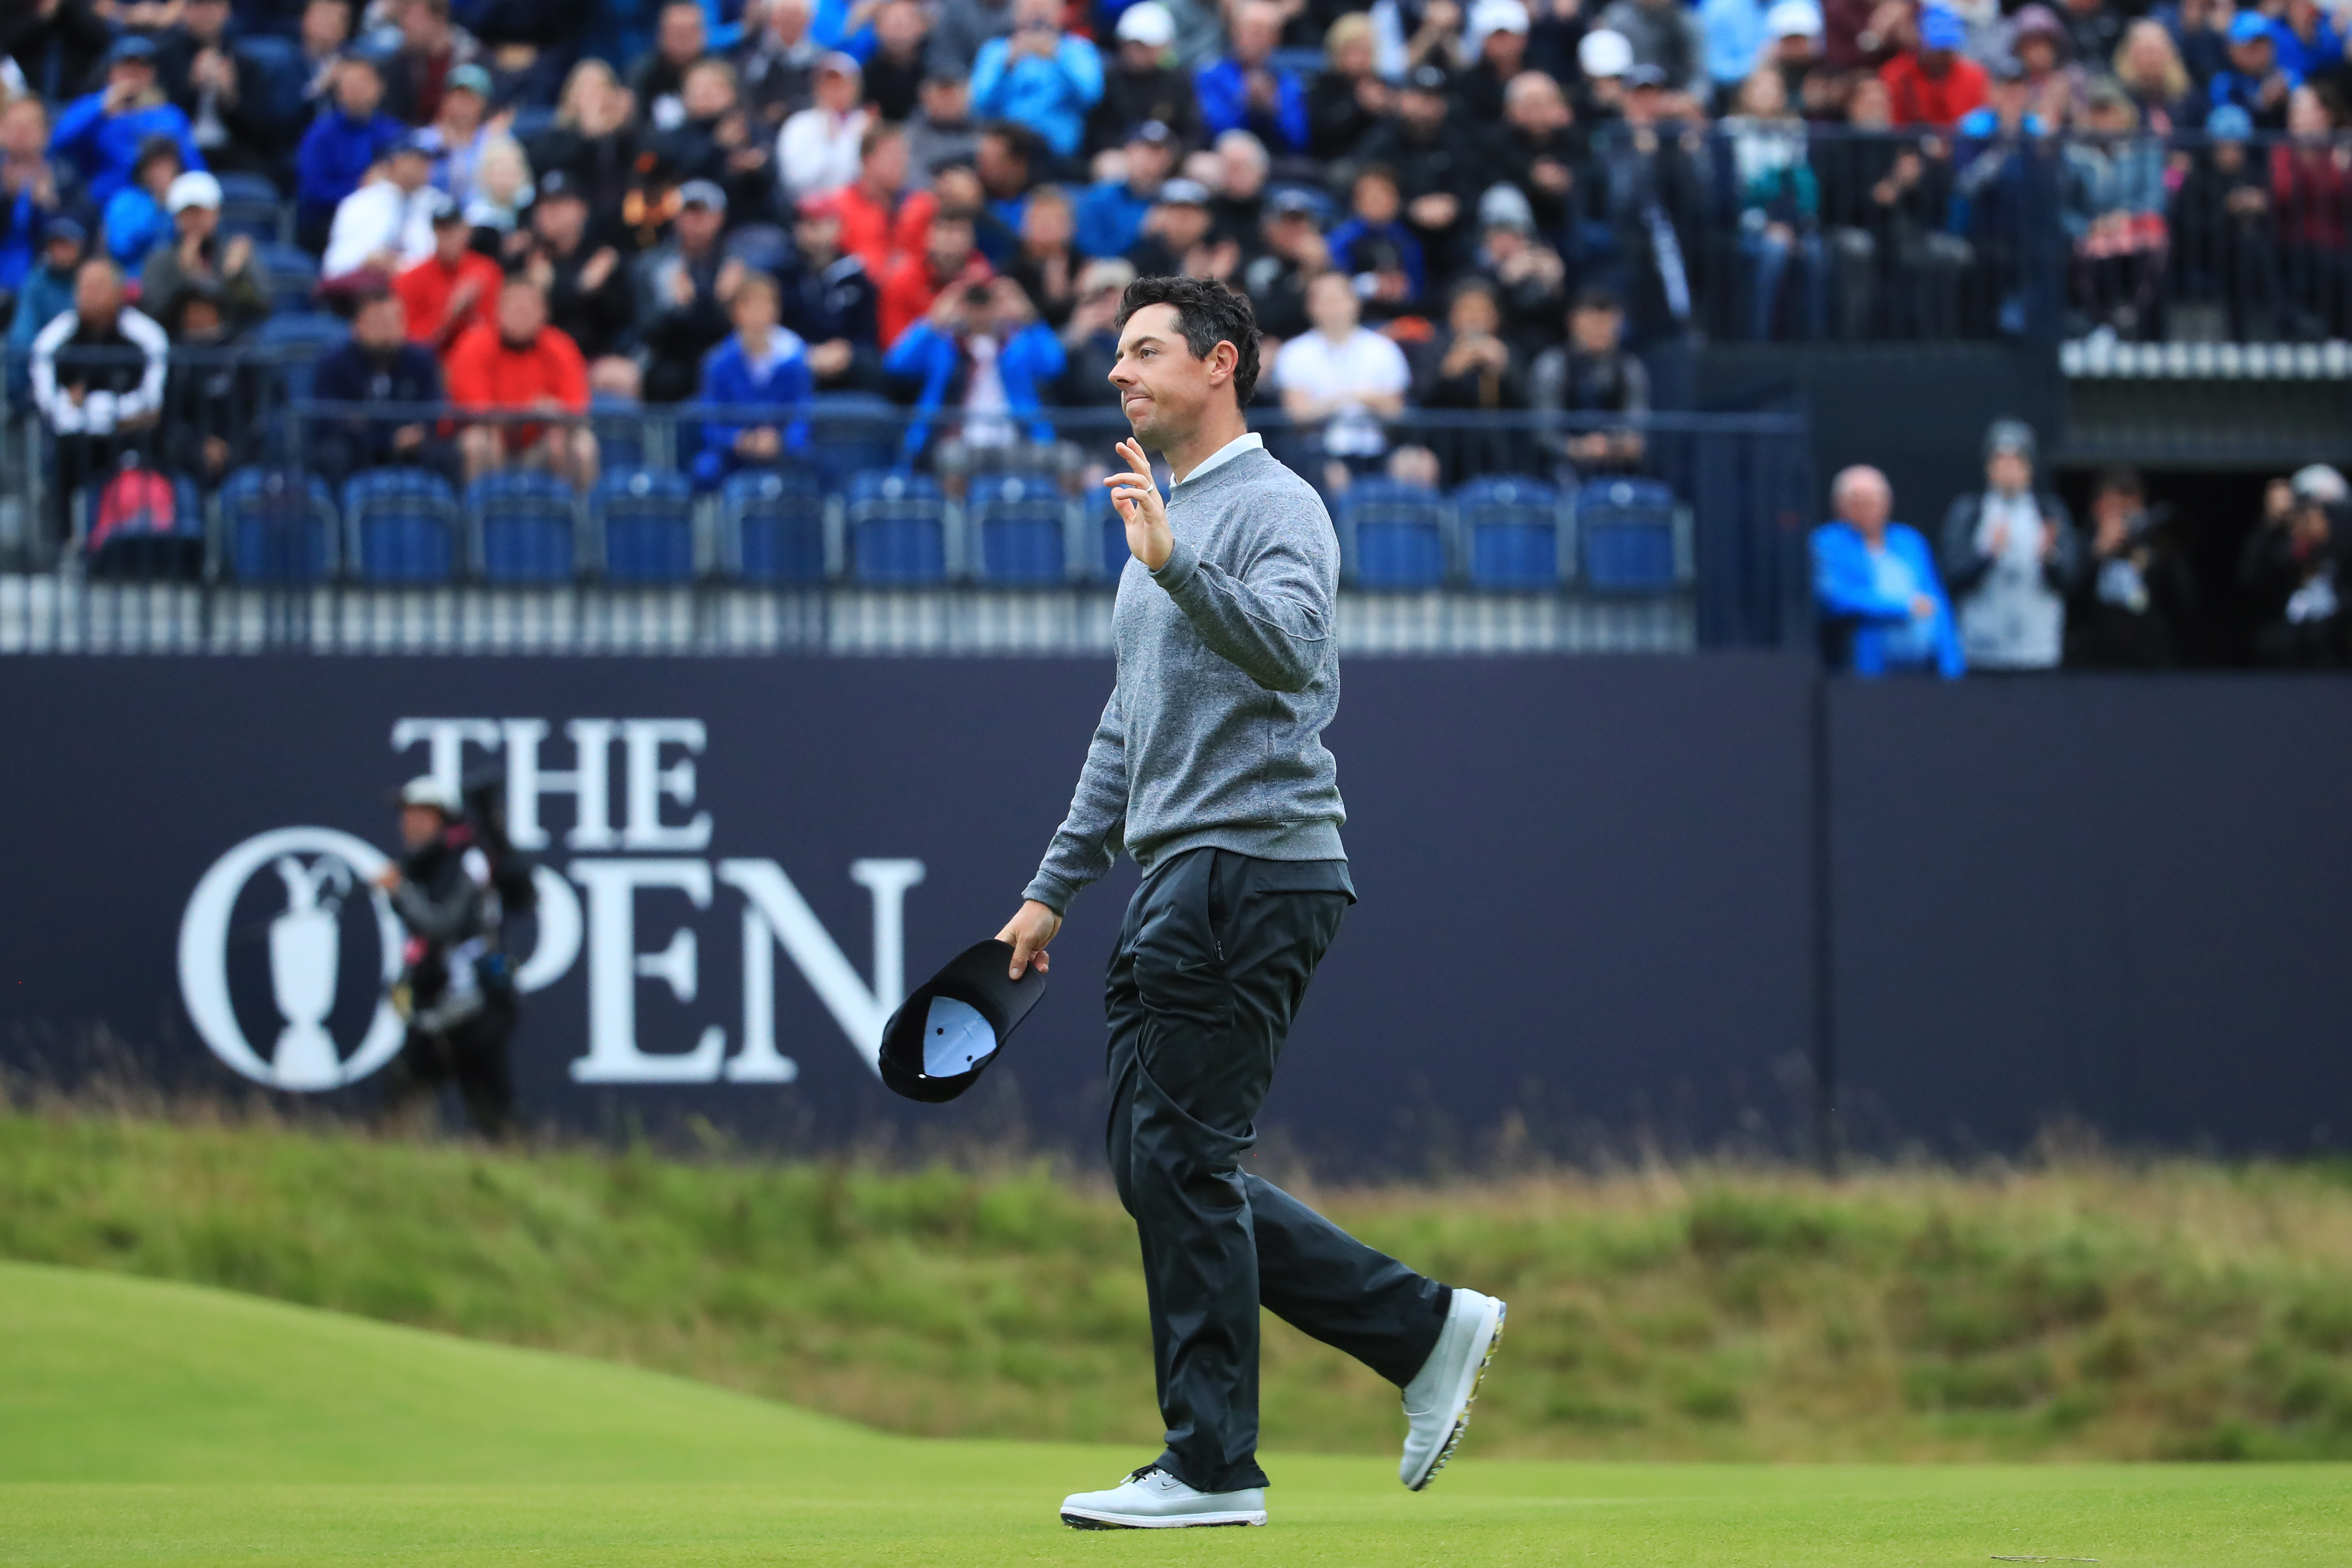 British Open 2019: Emotional Rory McIlroy praises 'incredible' support after near-miss